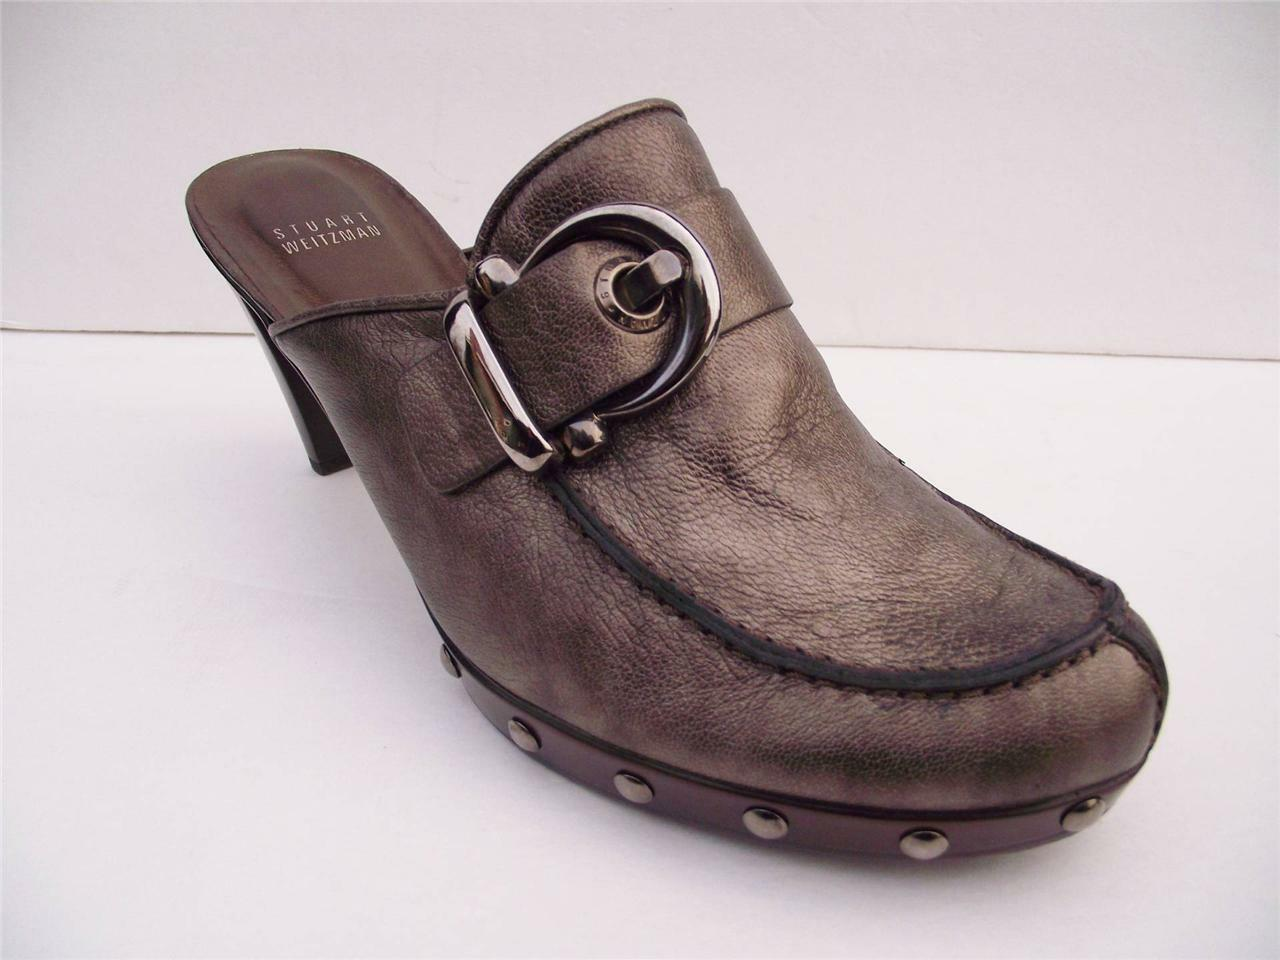 Stuart Weitzman Pewter M Leather Clogs Buckle and Studs 10 M Pewter ad76c6